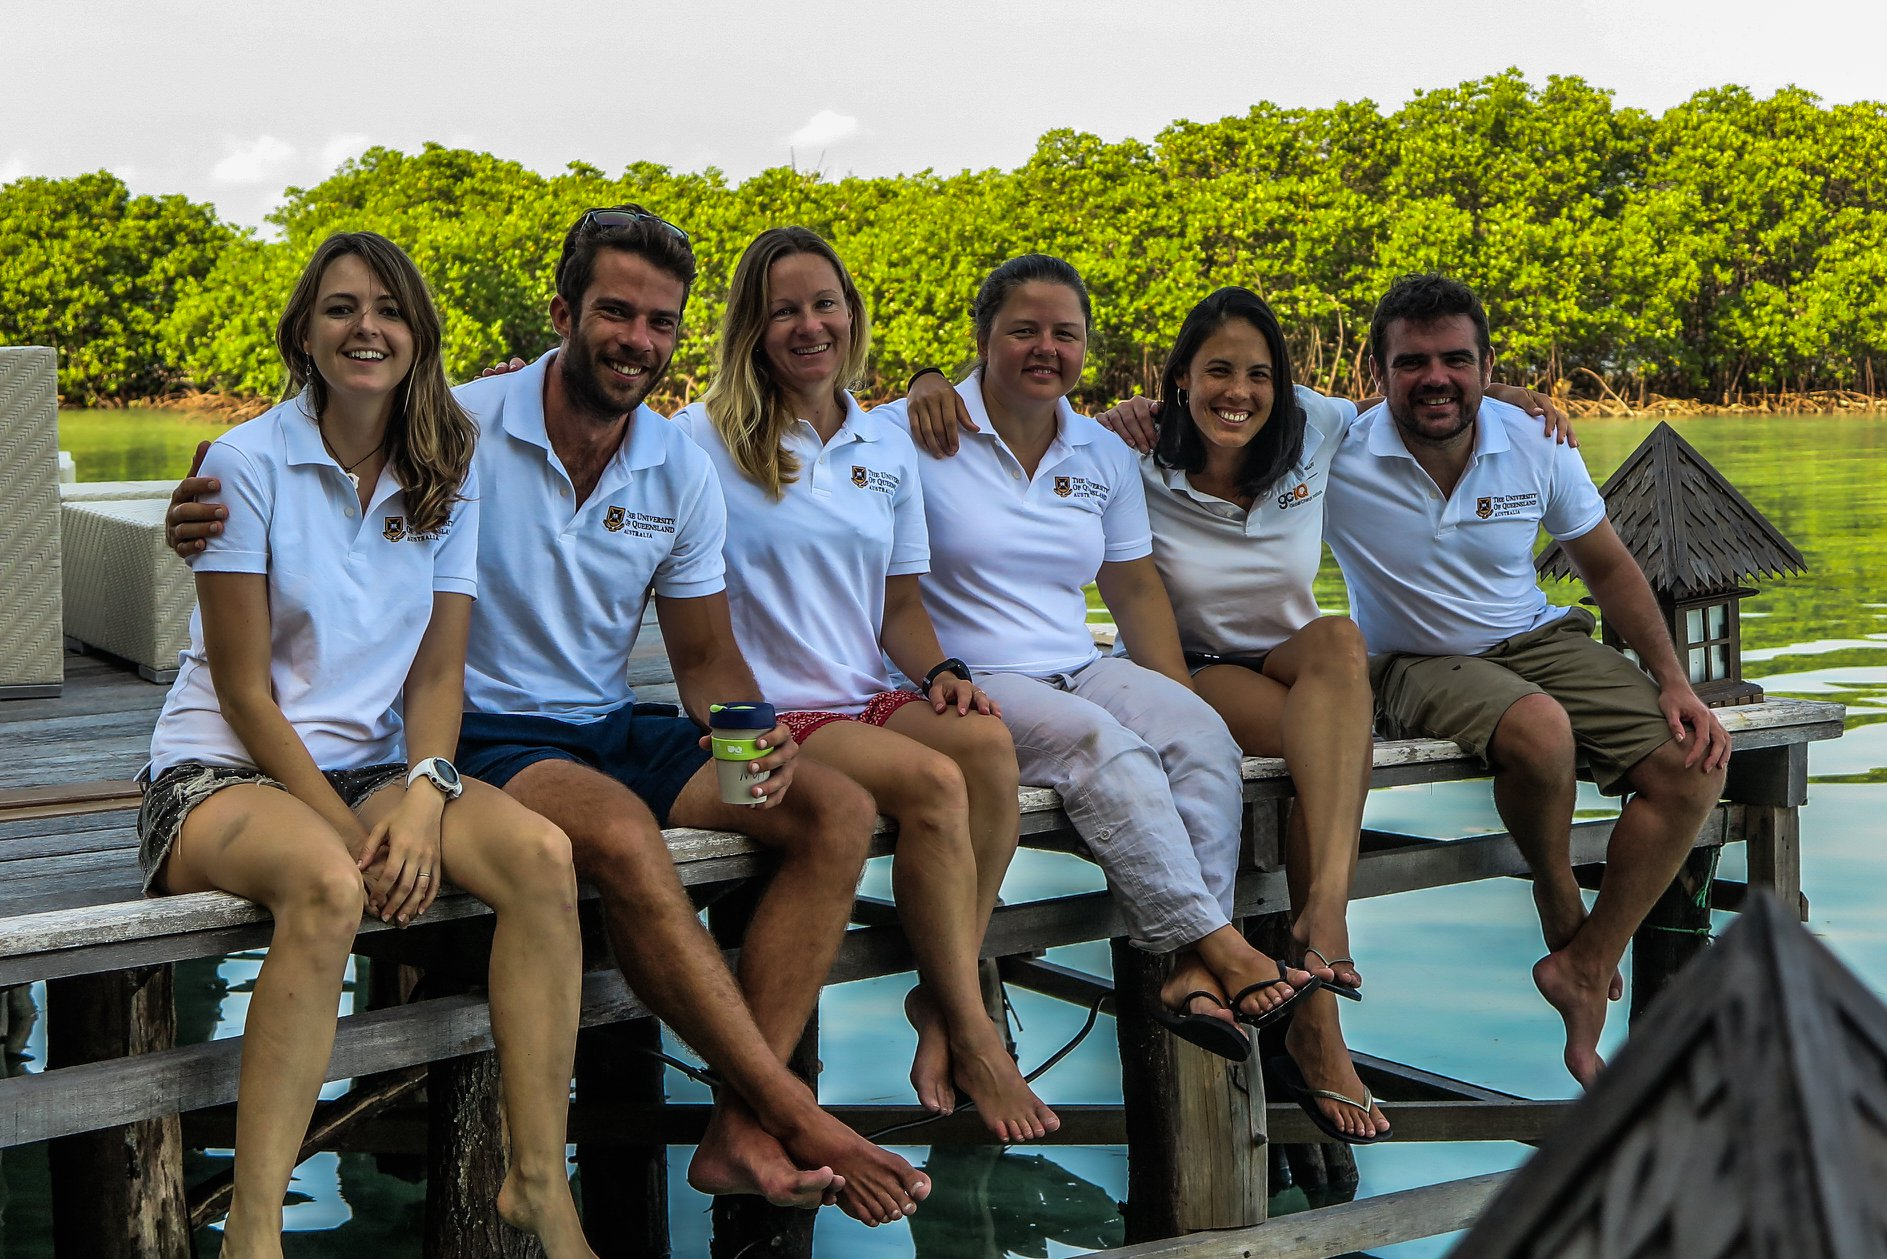 The field team from L-R: Emma Kennedy, Patrick Gartrell, Kathryn Markey, Susie Green, Anjani Ganase and Dominic Bryant